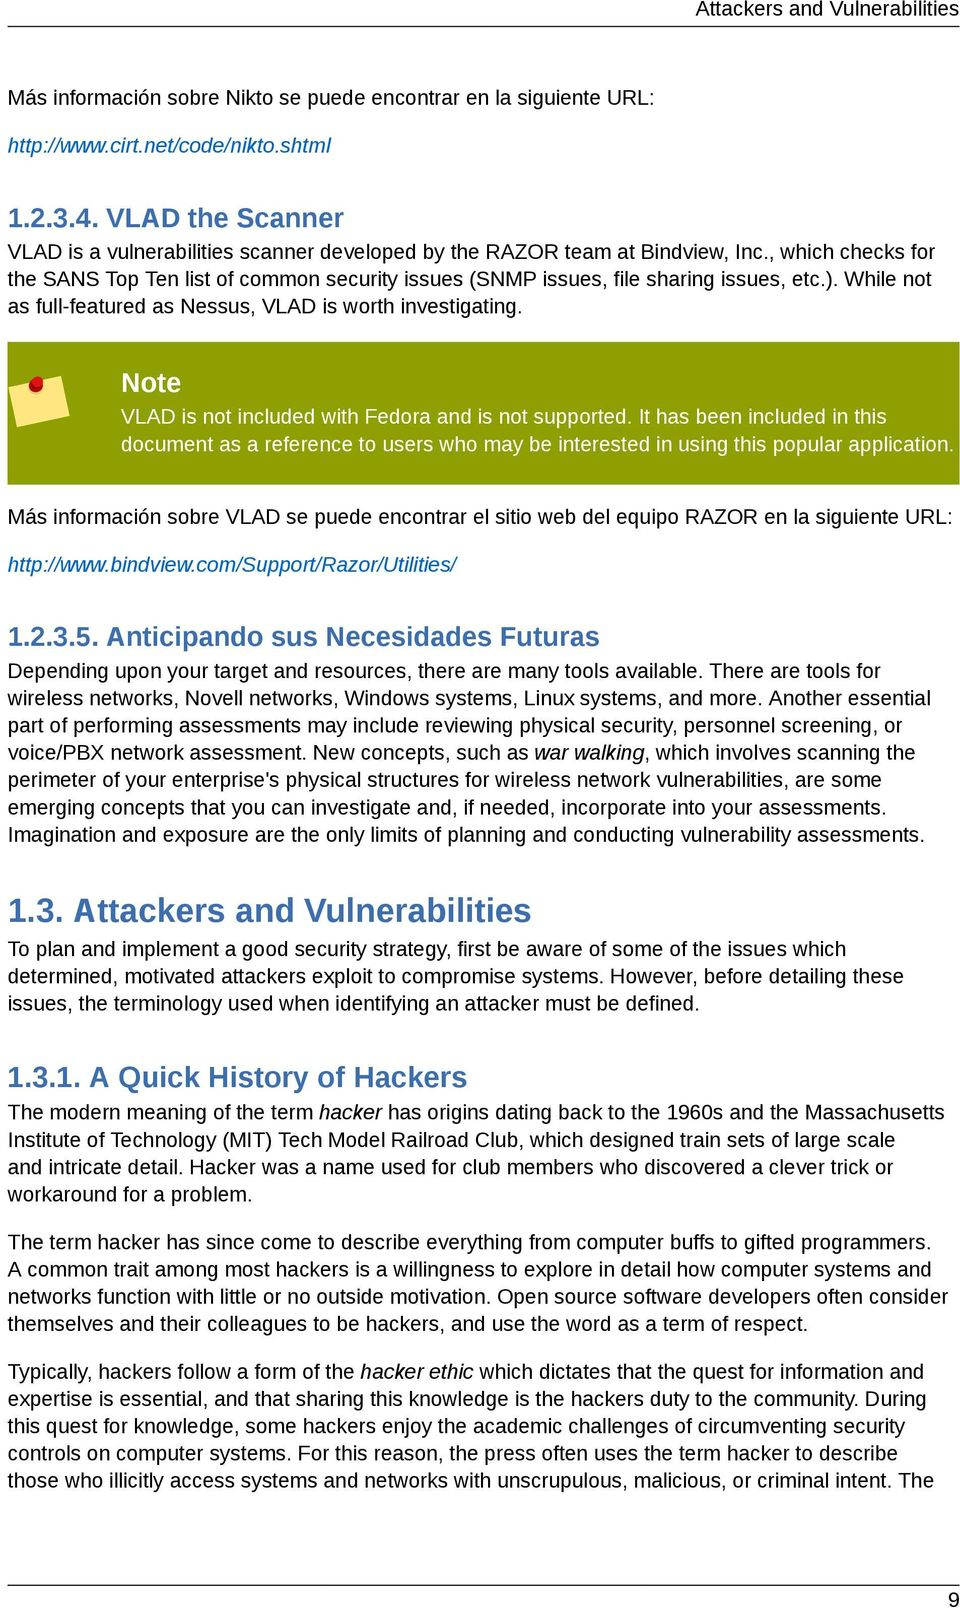 , which checks for the SANS Top Ten list of common security issues (SNMP issues, file sharing issues, etc.). While not as full-featured as Nessus, VLAD is worth investigating.